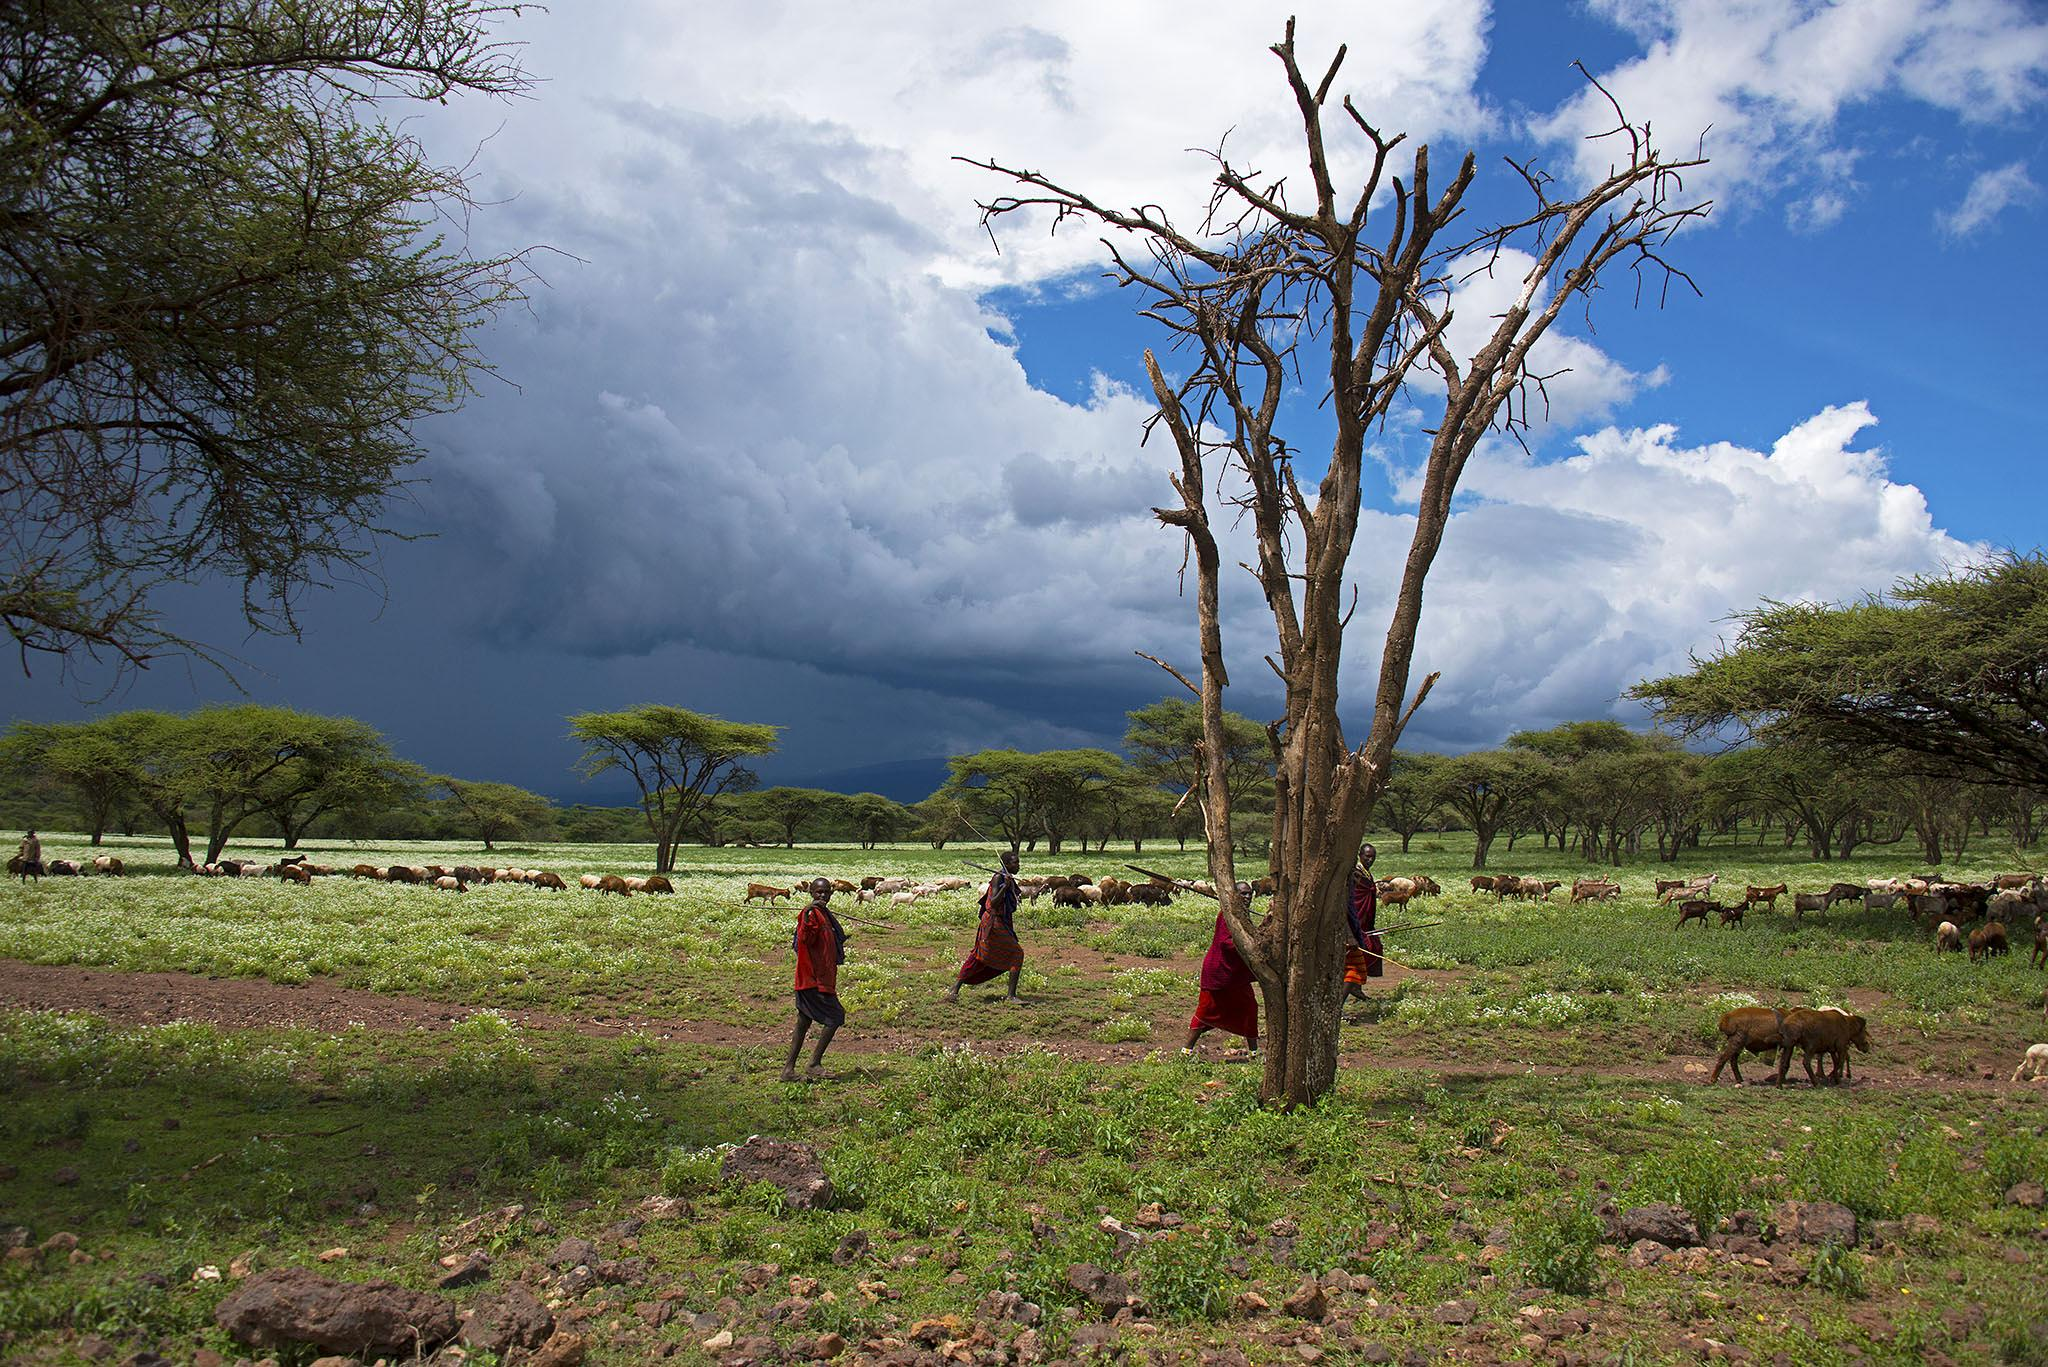 African landscape by Clive Finlayson